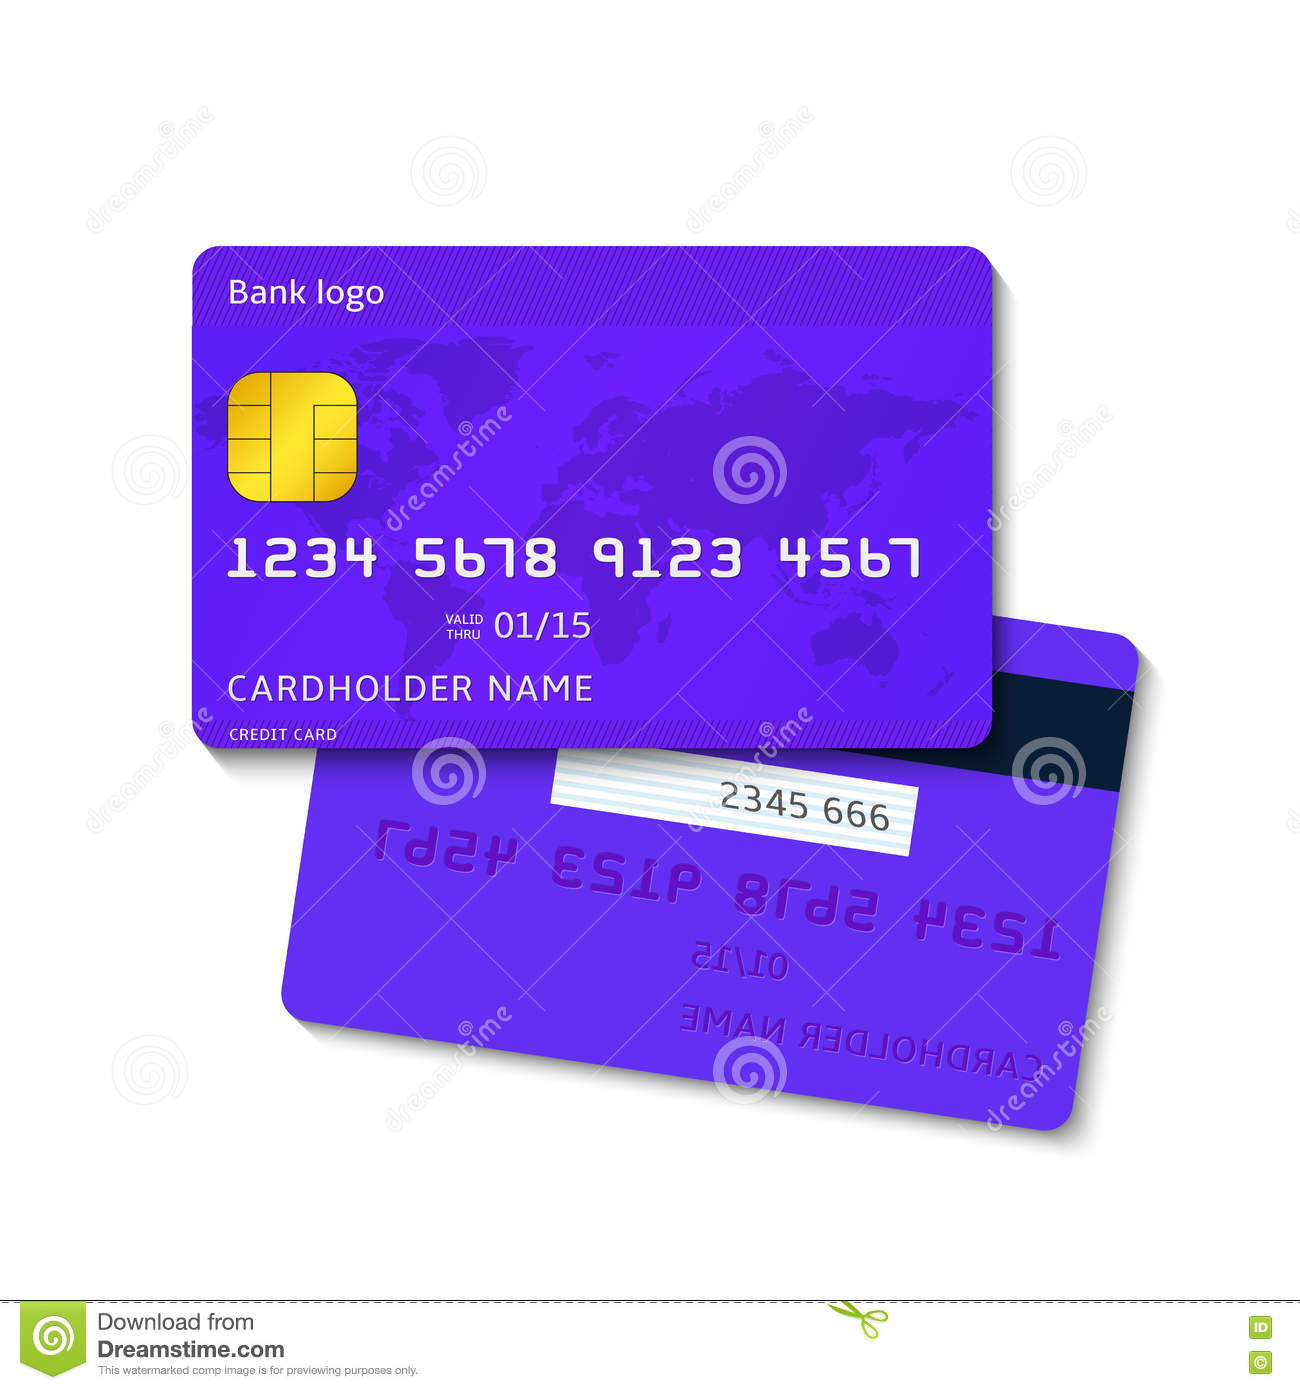 credit card 2 essay This was the writing task 2 question of the exam on 18th january my writing  2  in essay like that , should i say credit card or credit cards.